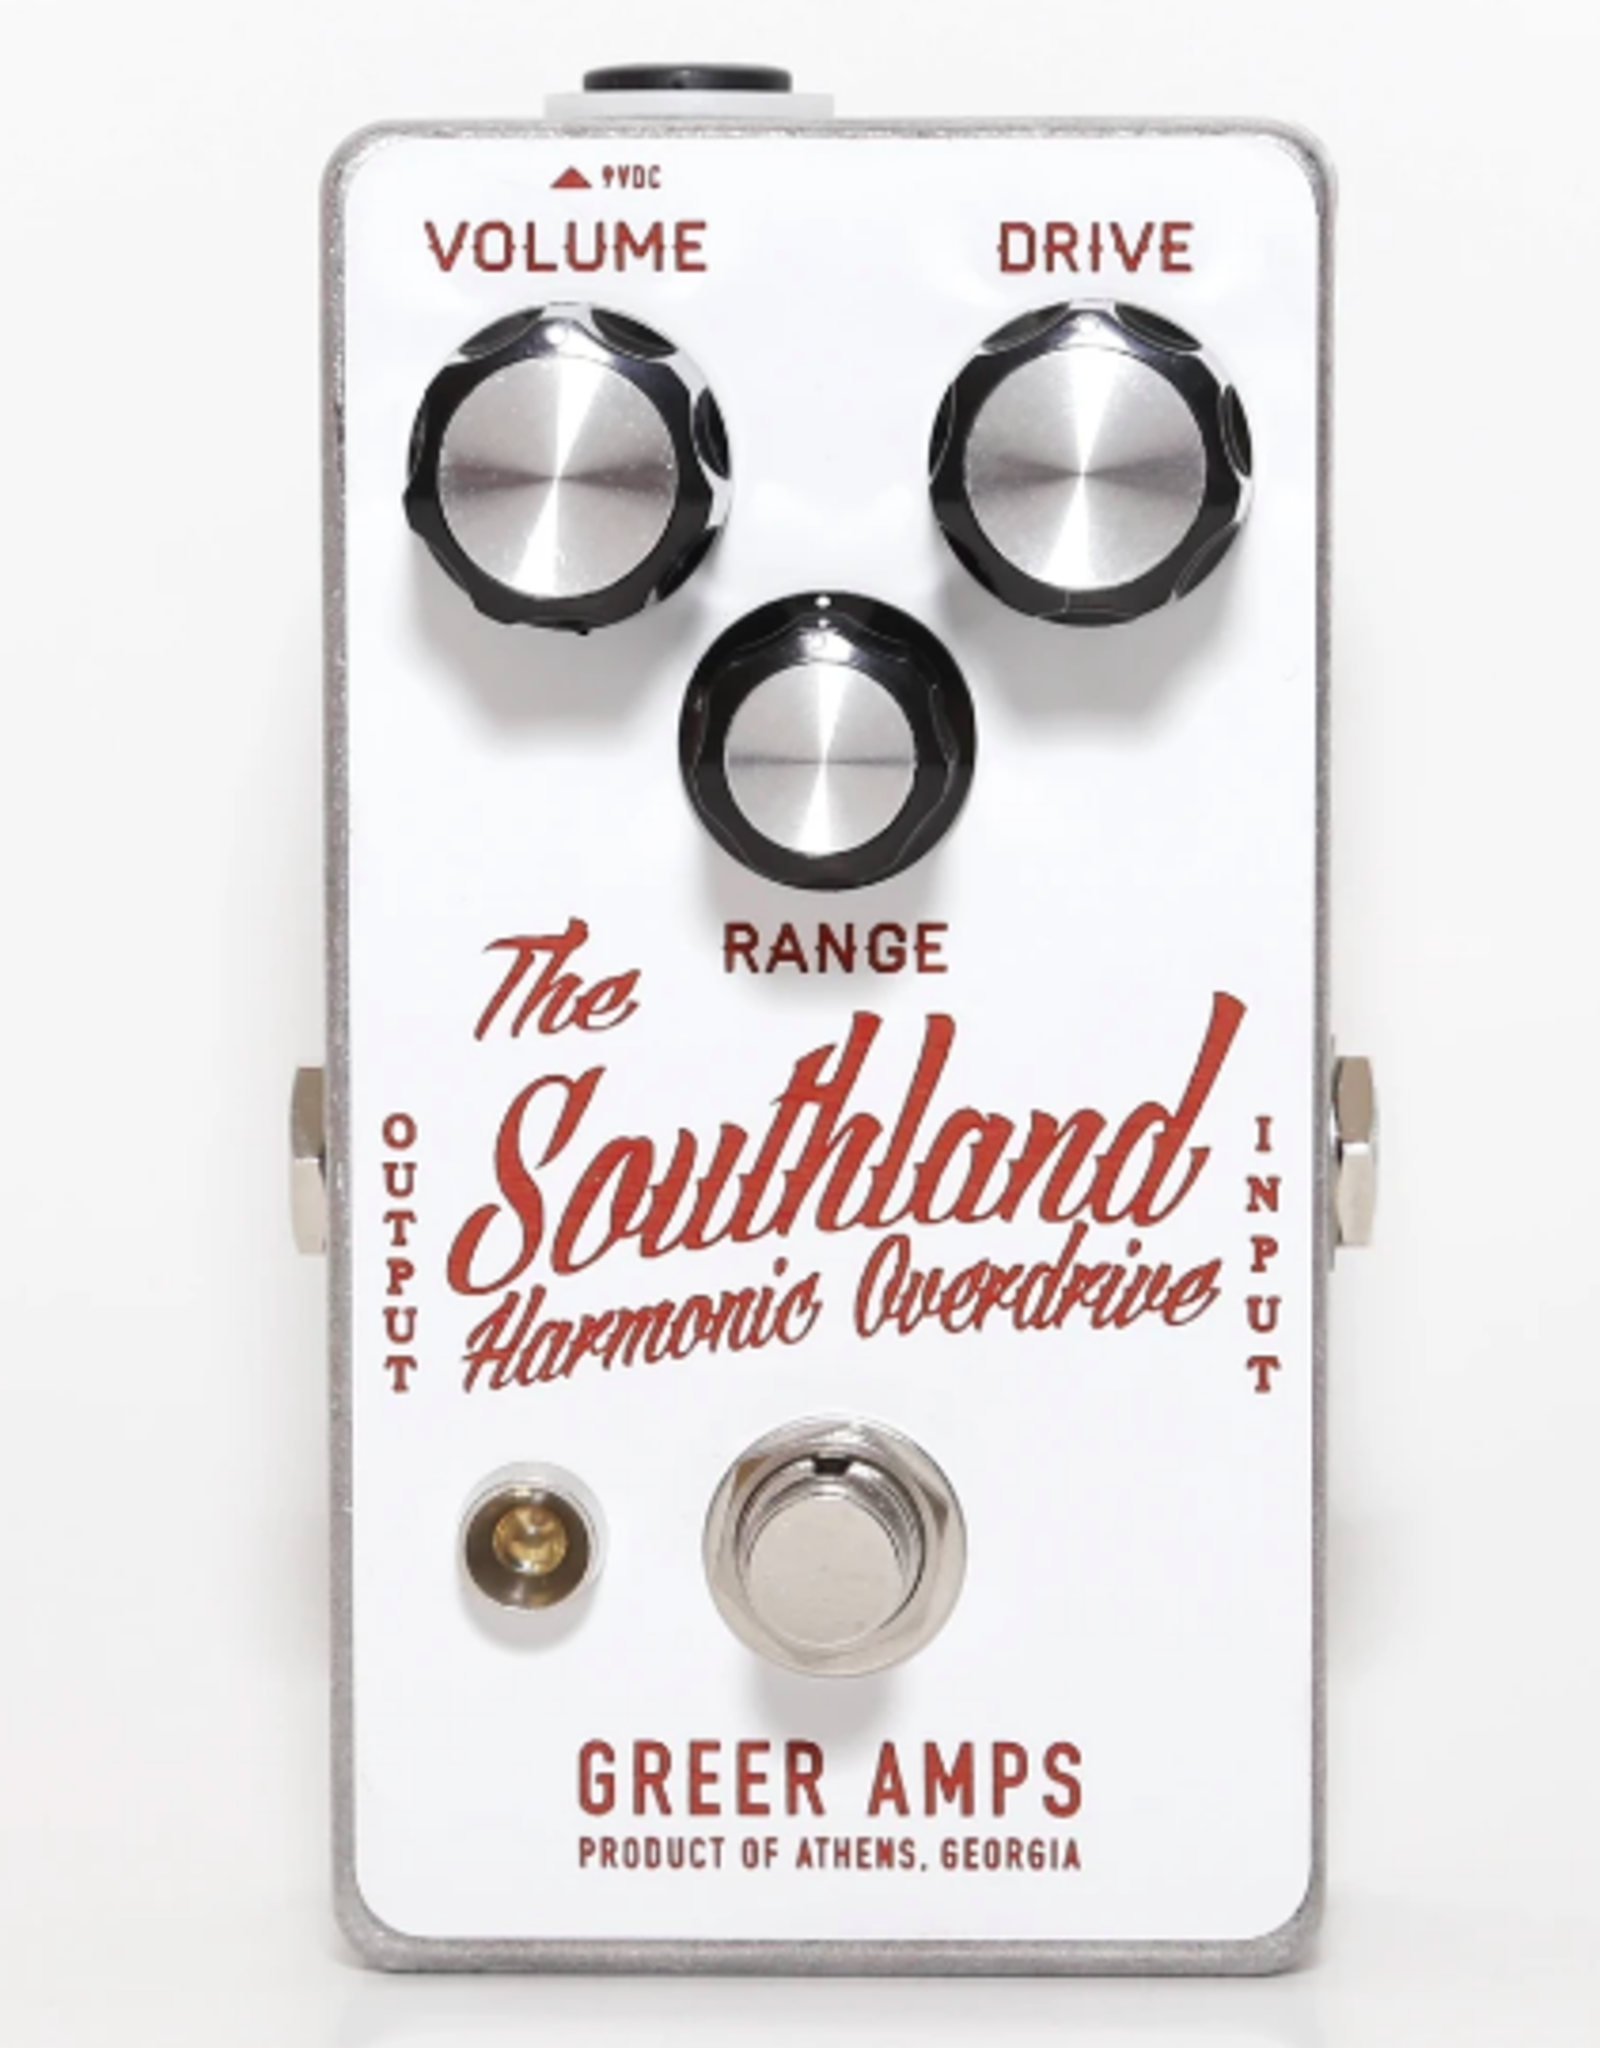 Greer Amplification Southland Harmonic Overdrive